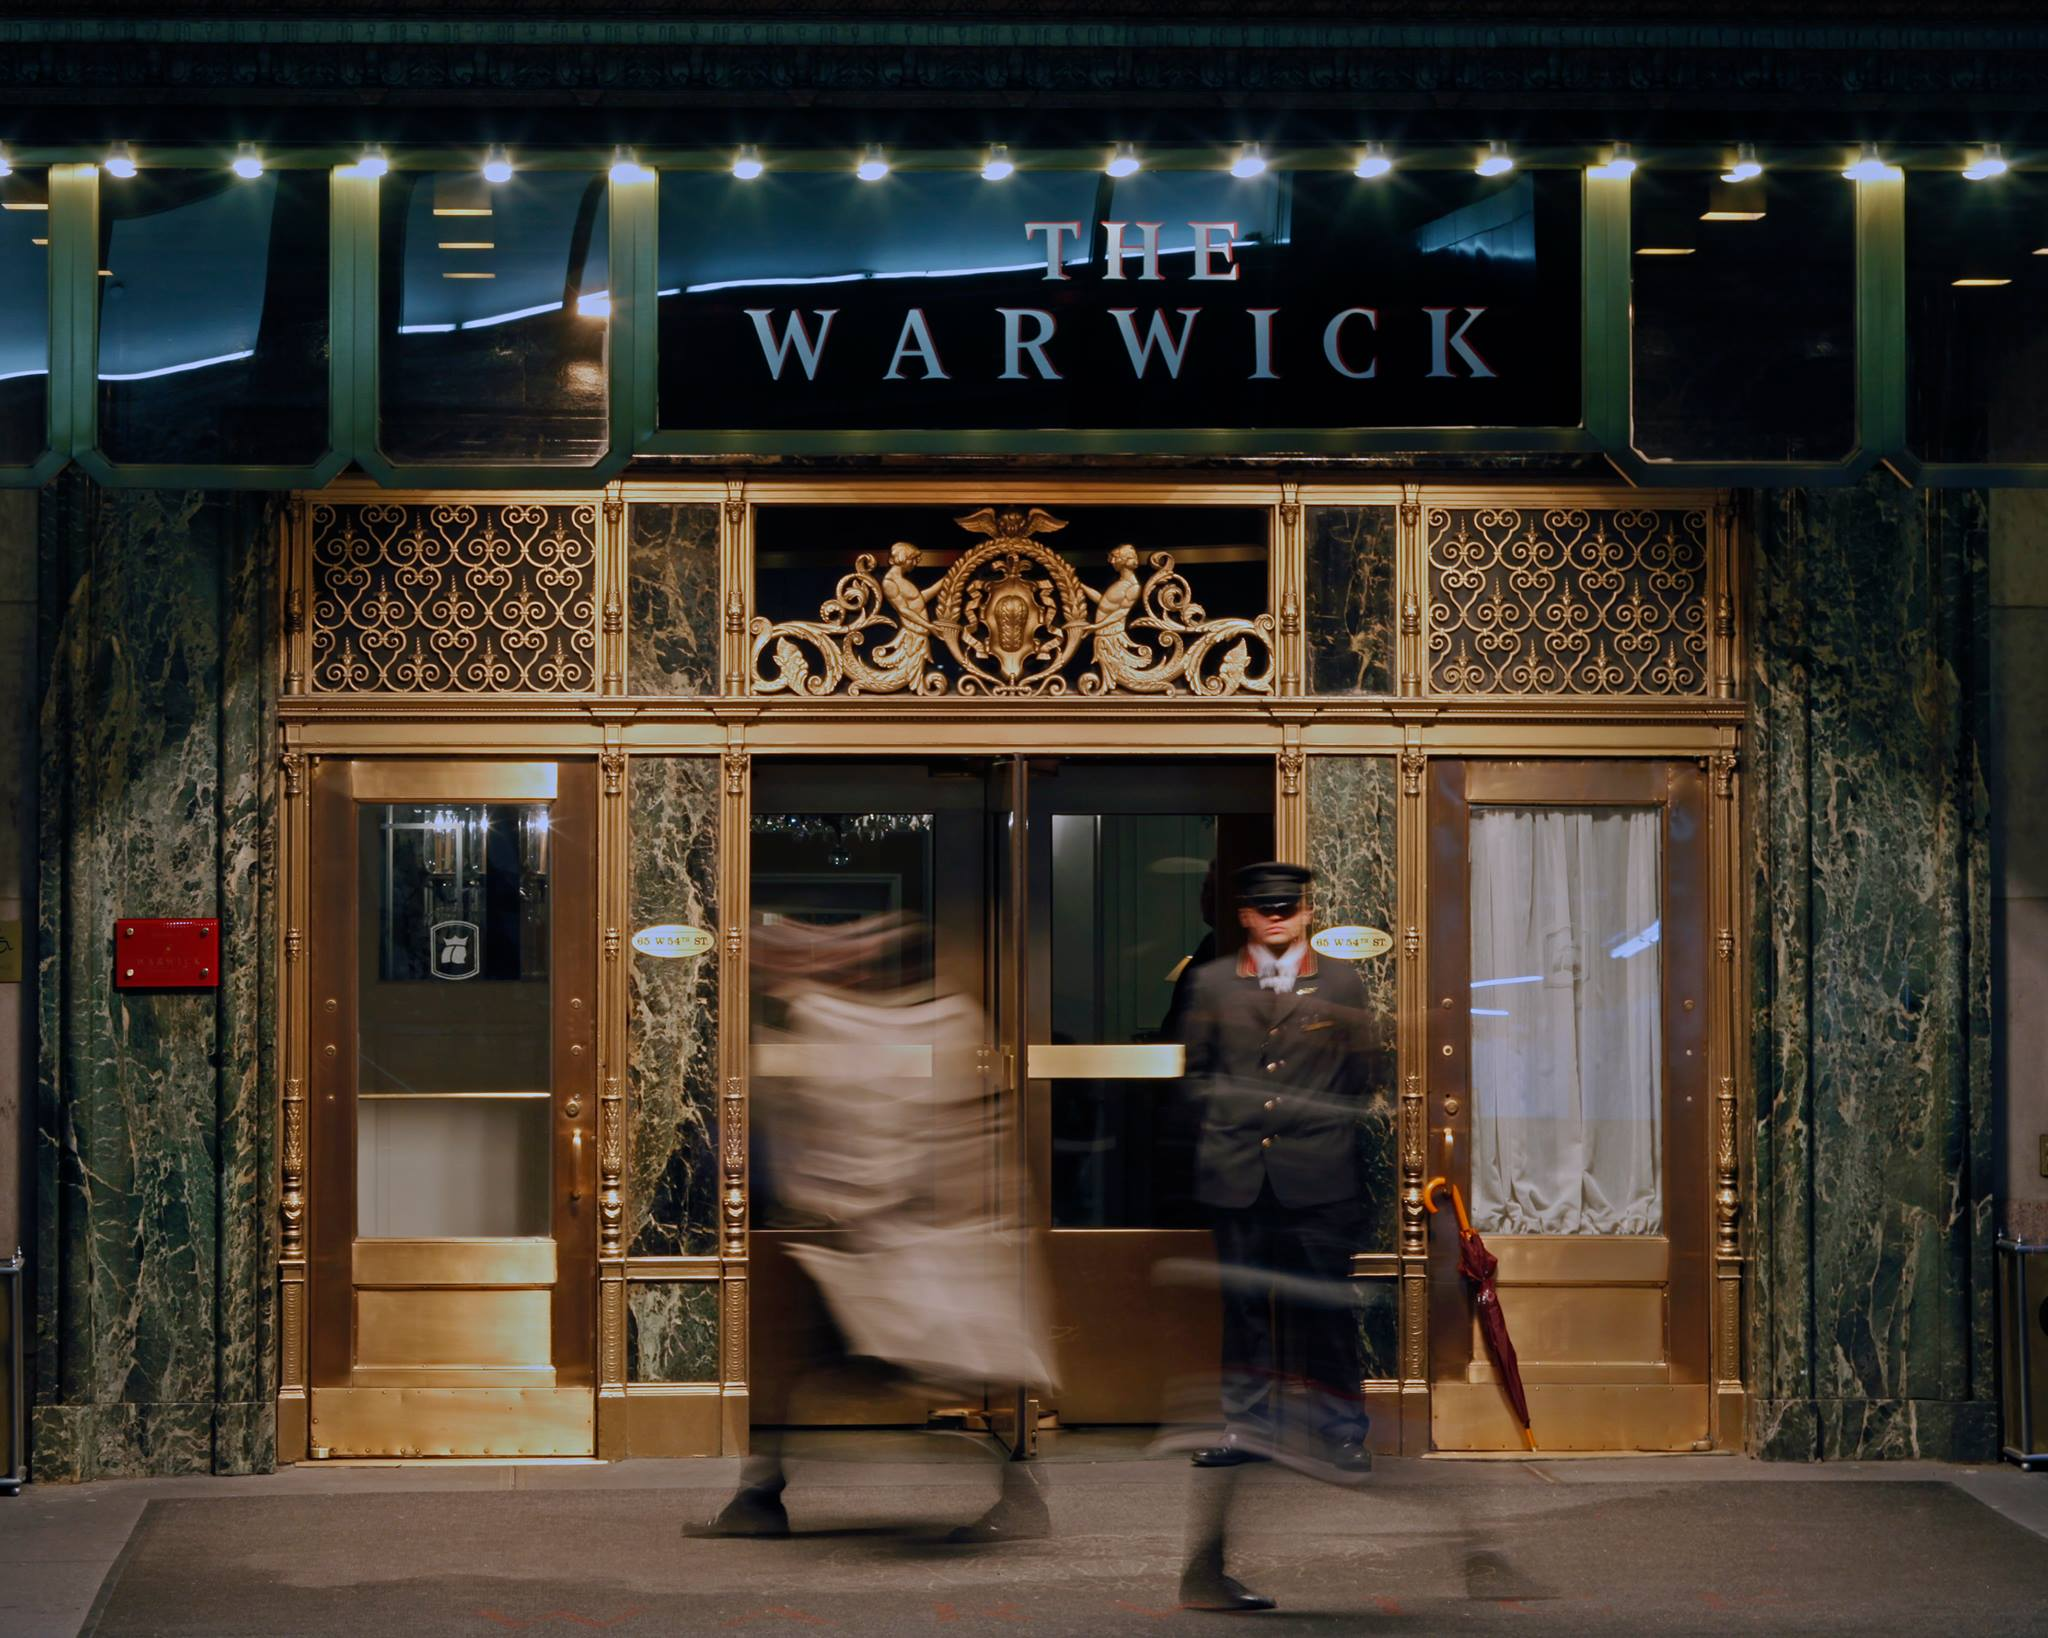 Image of the Warwick Hotel in NYC